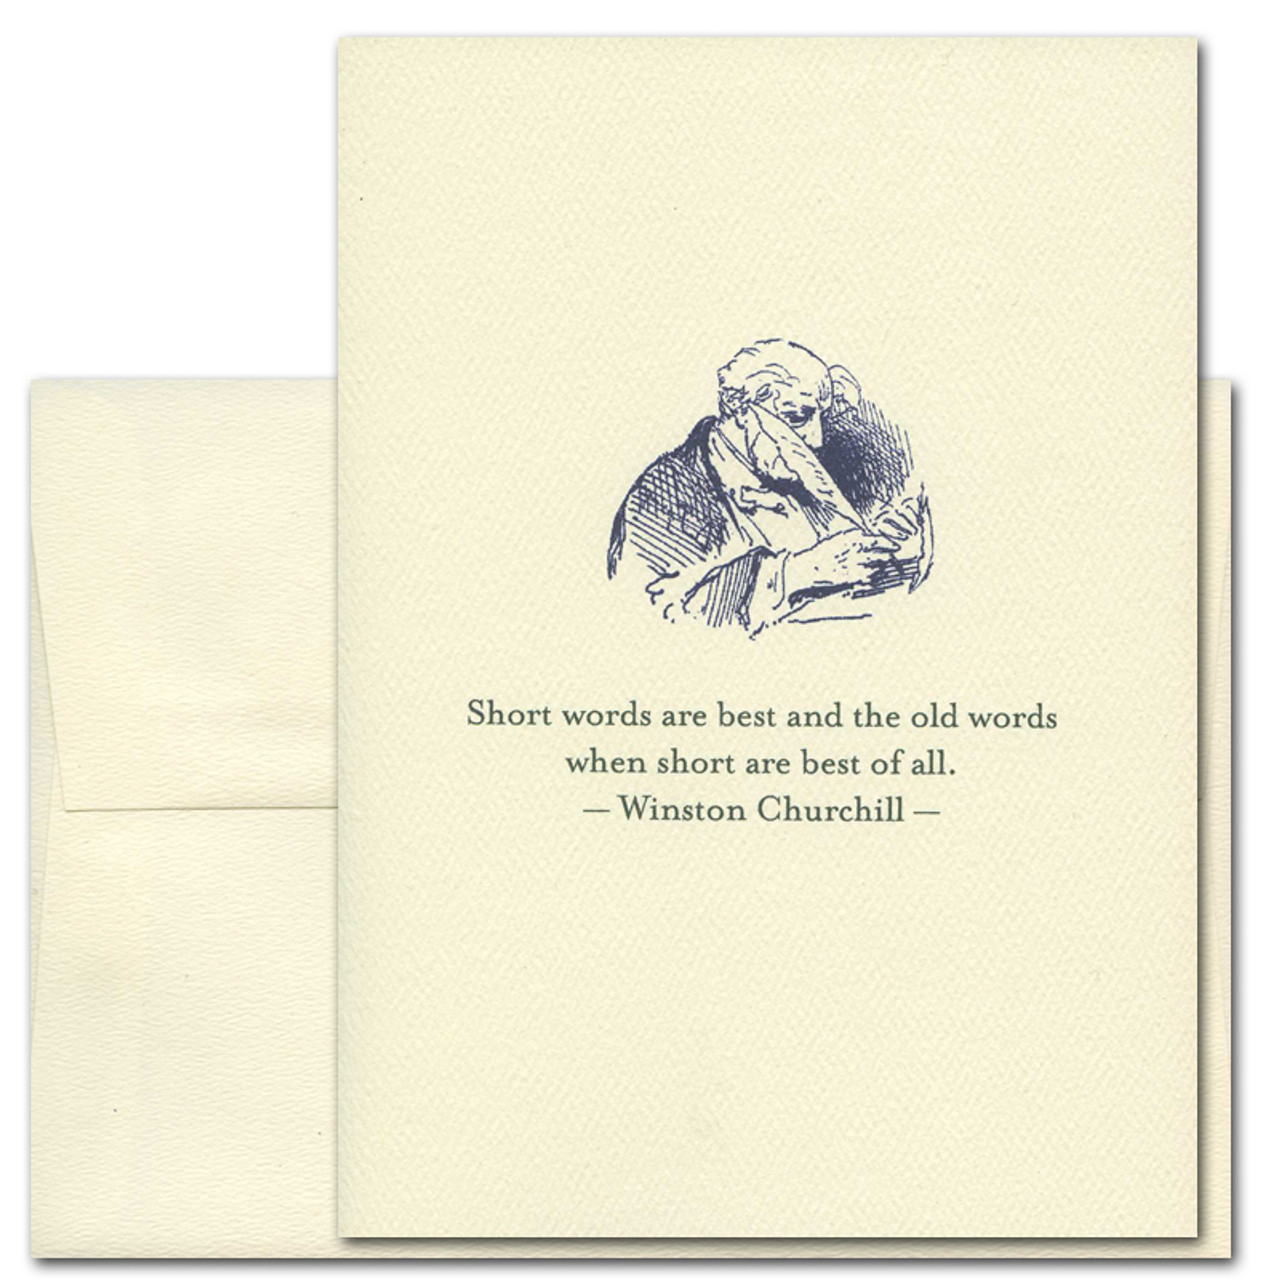 """Quotation Card """"Old Words: Churchill"""" Cover shows an old fashioned illustration of a man writing with a feather quill pen with a quote from Winston Churchill: """"Short words are best and the old words when short are best of all."""""""